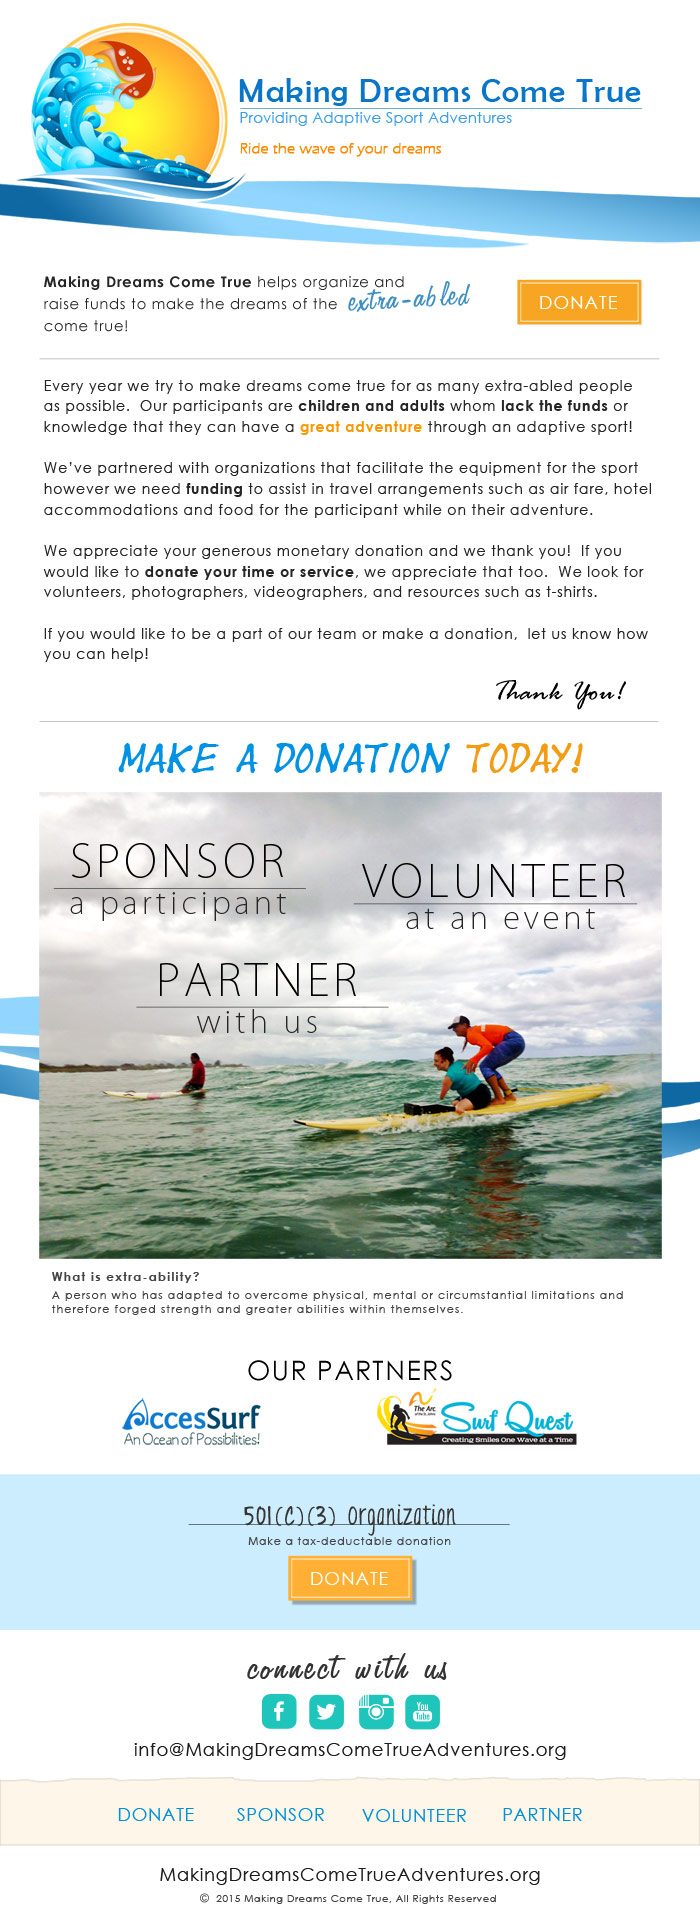 MDCT Donation Email Blast